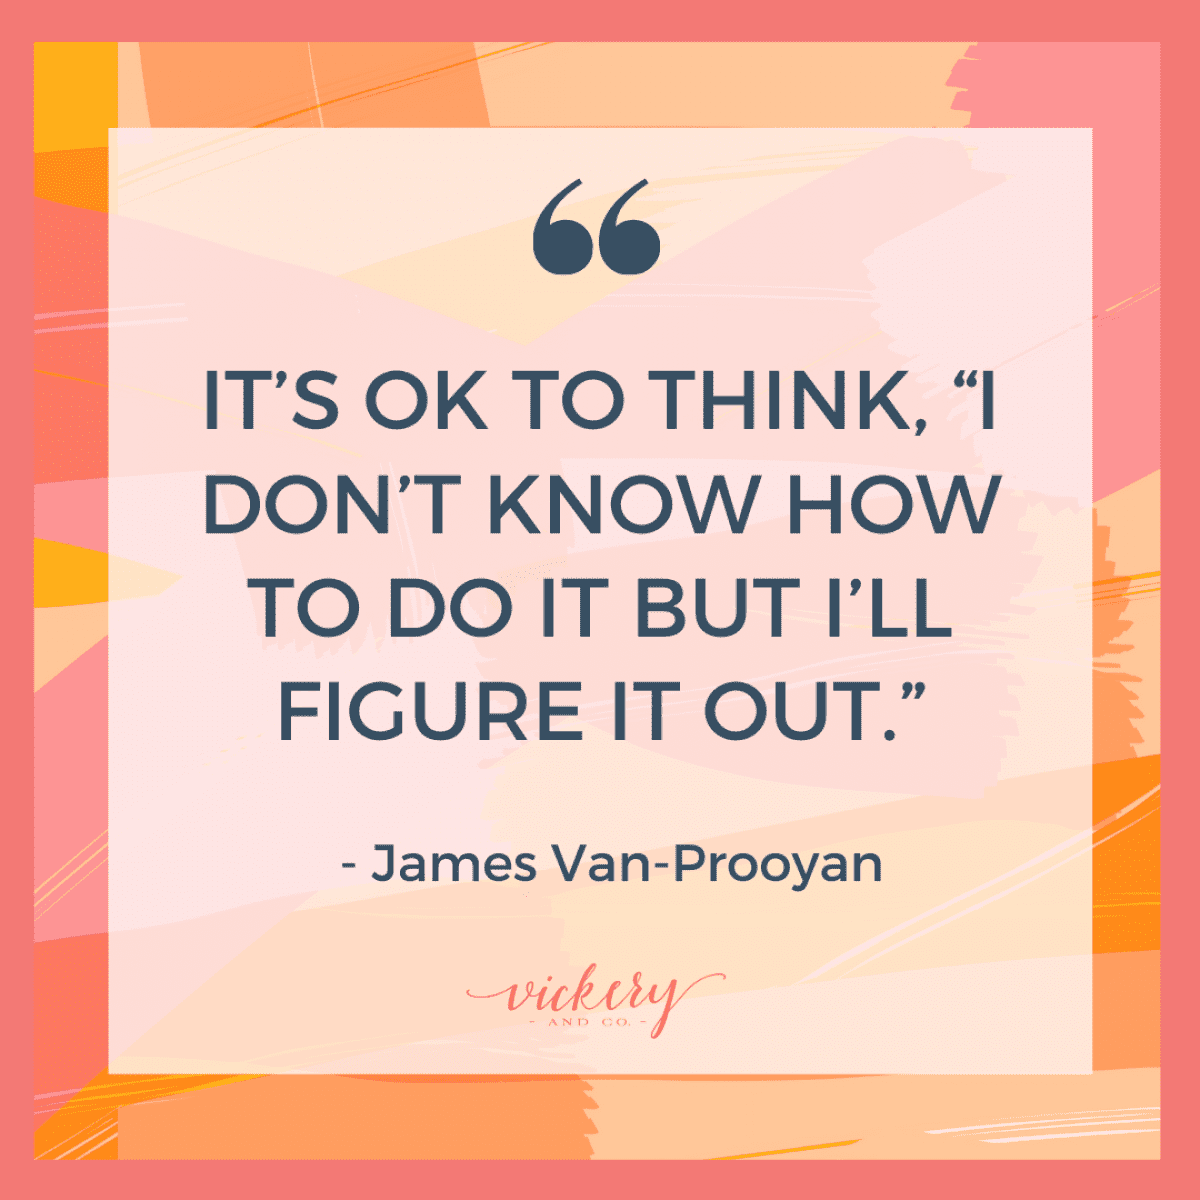 20-year military veteran, James Van-Prooyen, joins The Brave Files to share how he transitioned to civilian life and built a business helping other veterans become entrepreneurs. We learn how the constant problem-solving associated with military life prepared him for the ups and downs of being a small business owner. James Van-Prooyen. Podcast. You don't have to know how to do it all to get started with your own business.